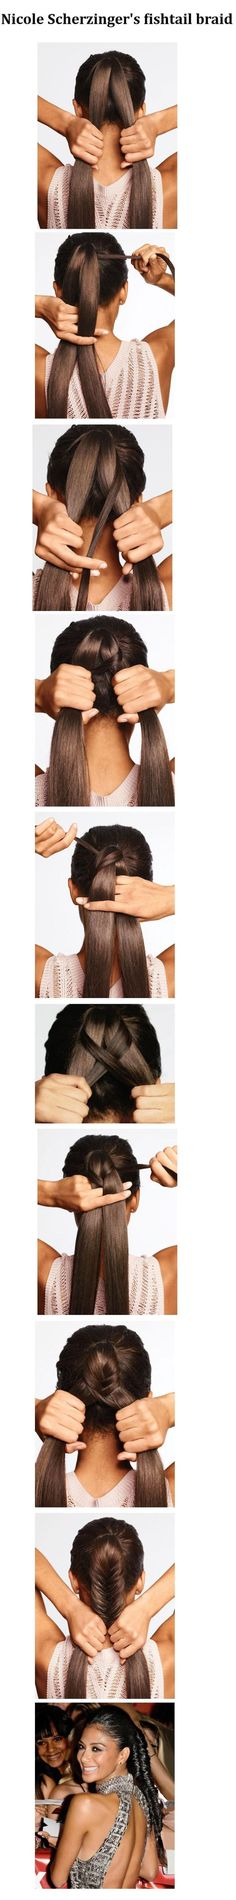 Fishtail Braid tutorial/how to. Easy to follow images. Saifou images | Welcome to SaiFou – Inspiring images